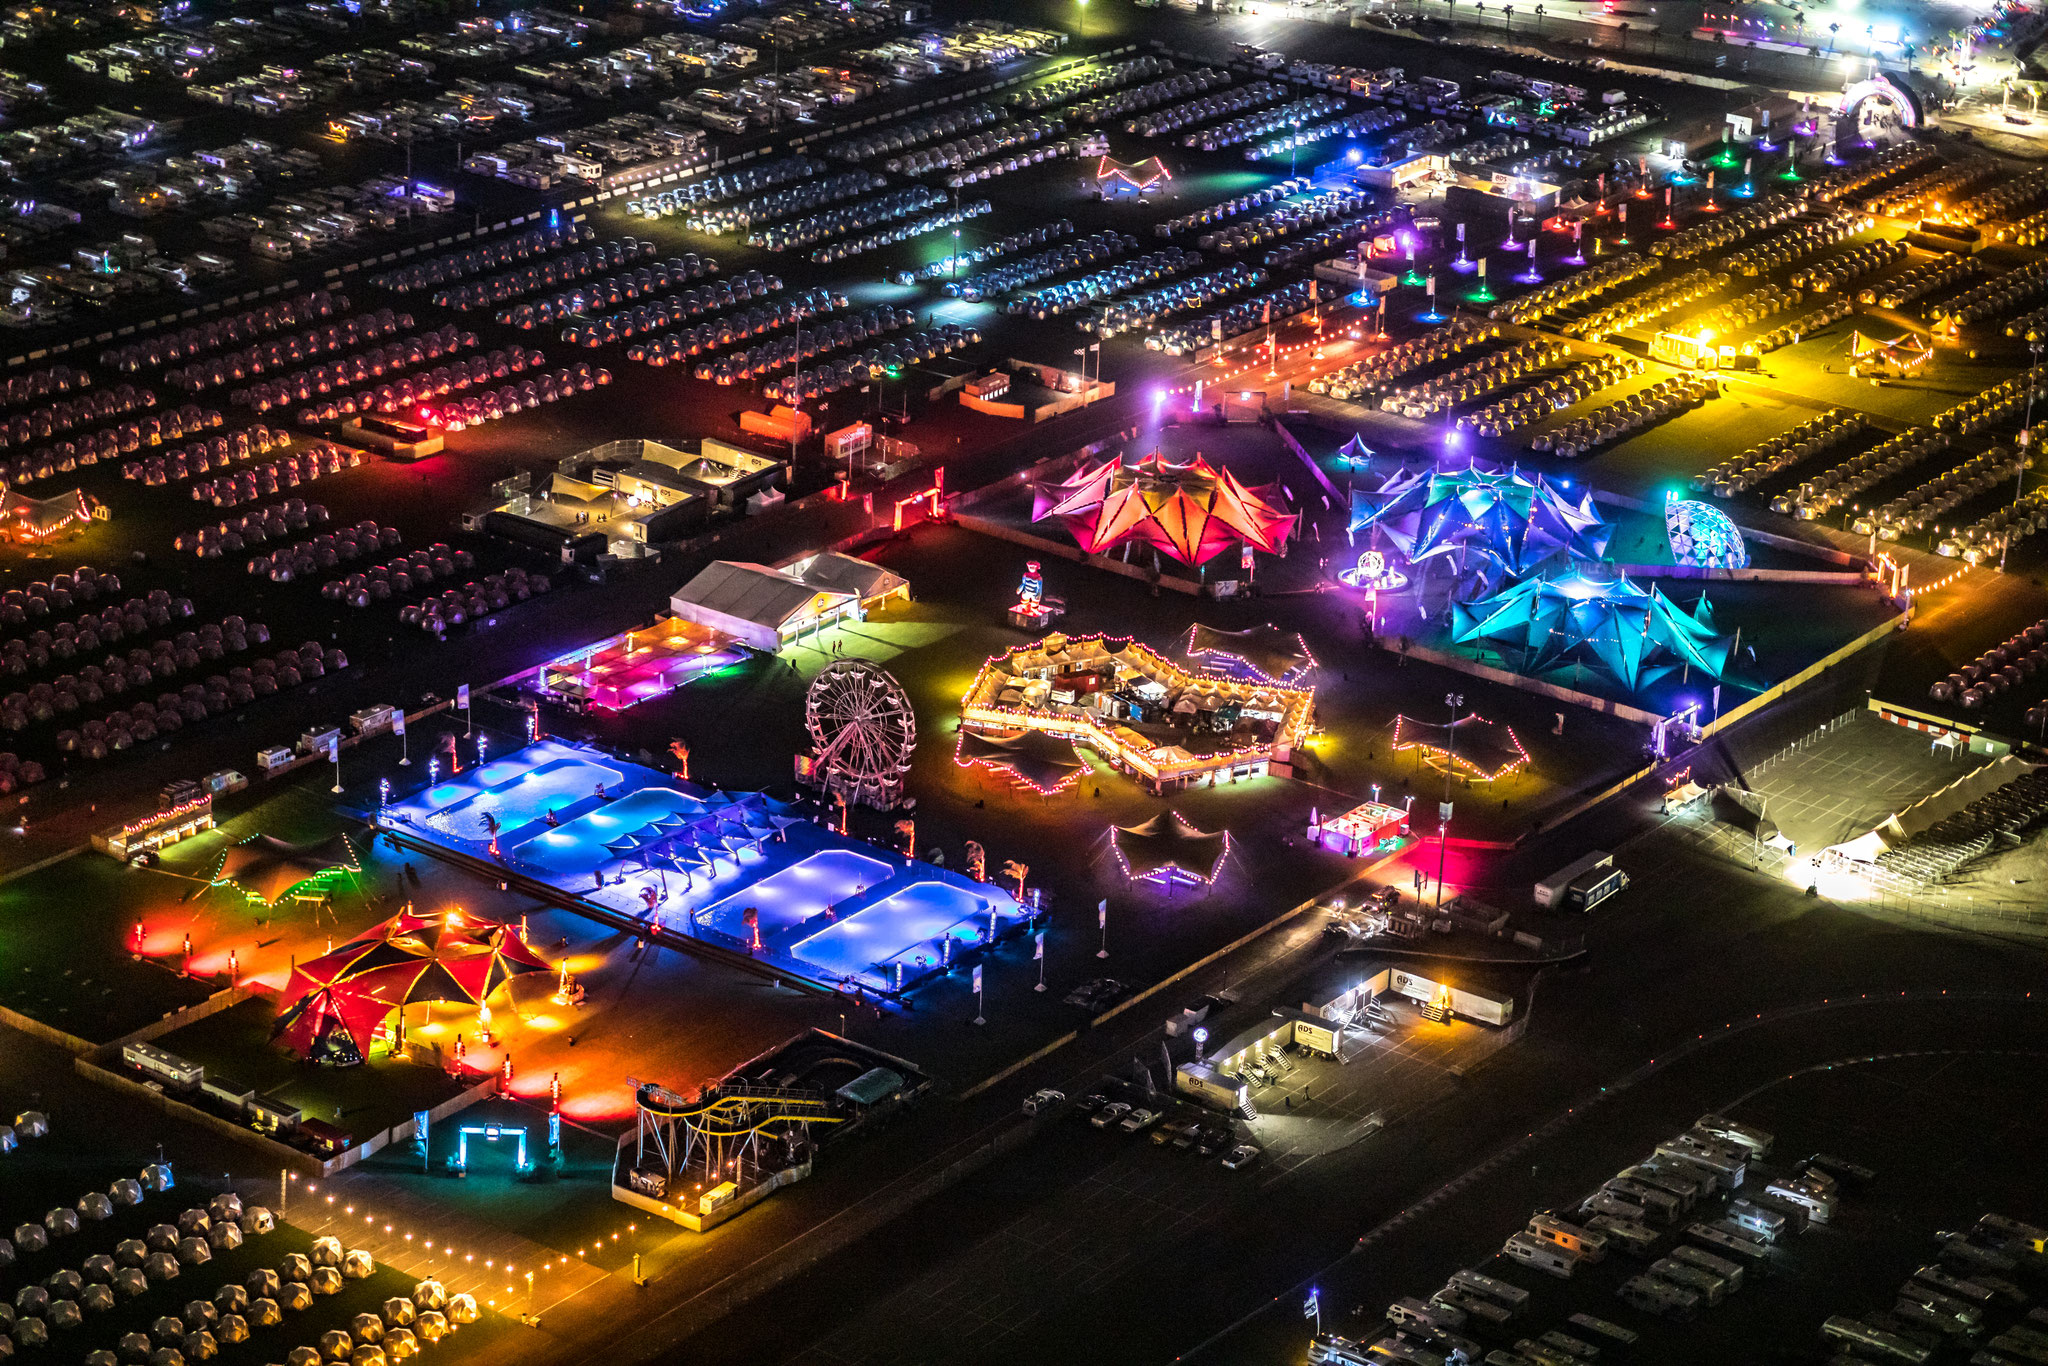 Camp EDC, Las Vegas / Picture: Backbone International